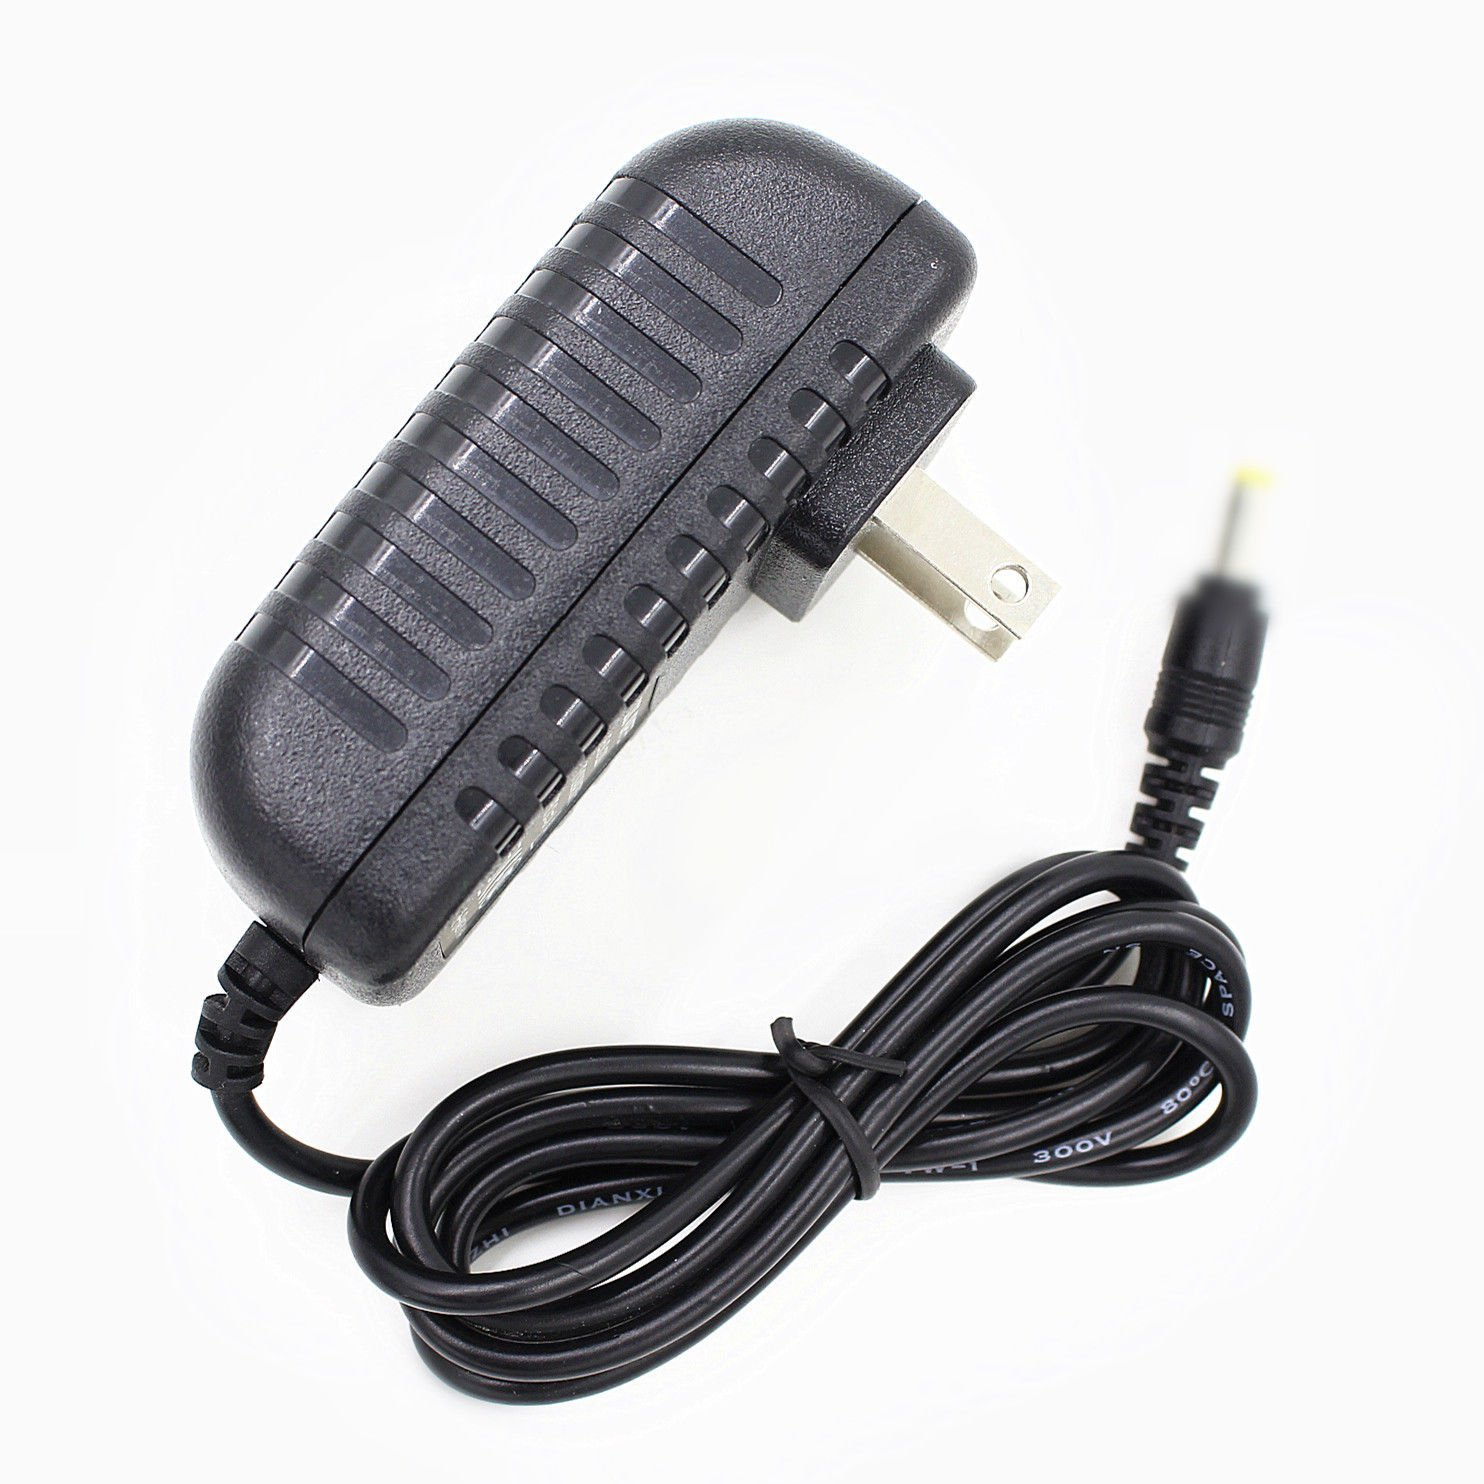 US Adapter Charger Power Supply Cord For LG DP371B DVD PLAYER